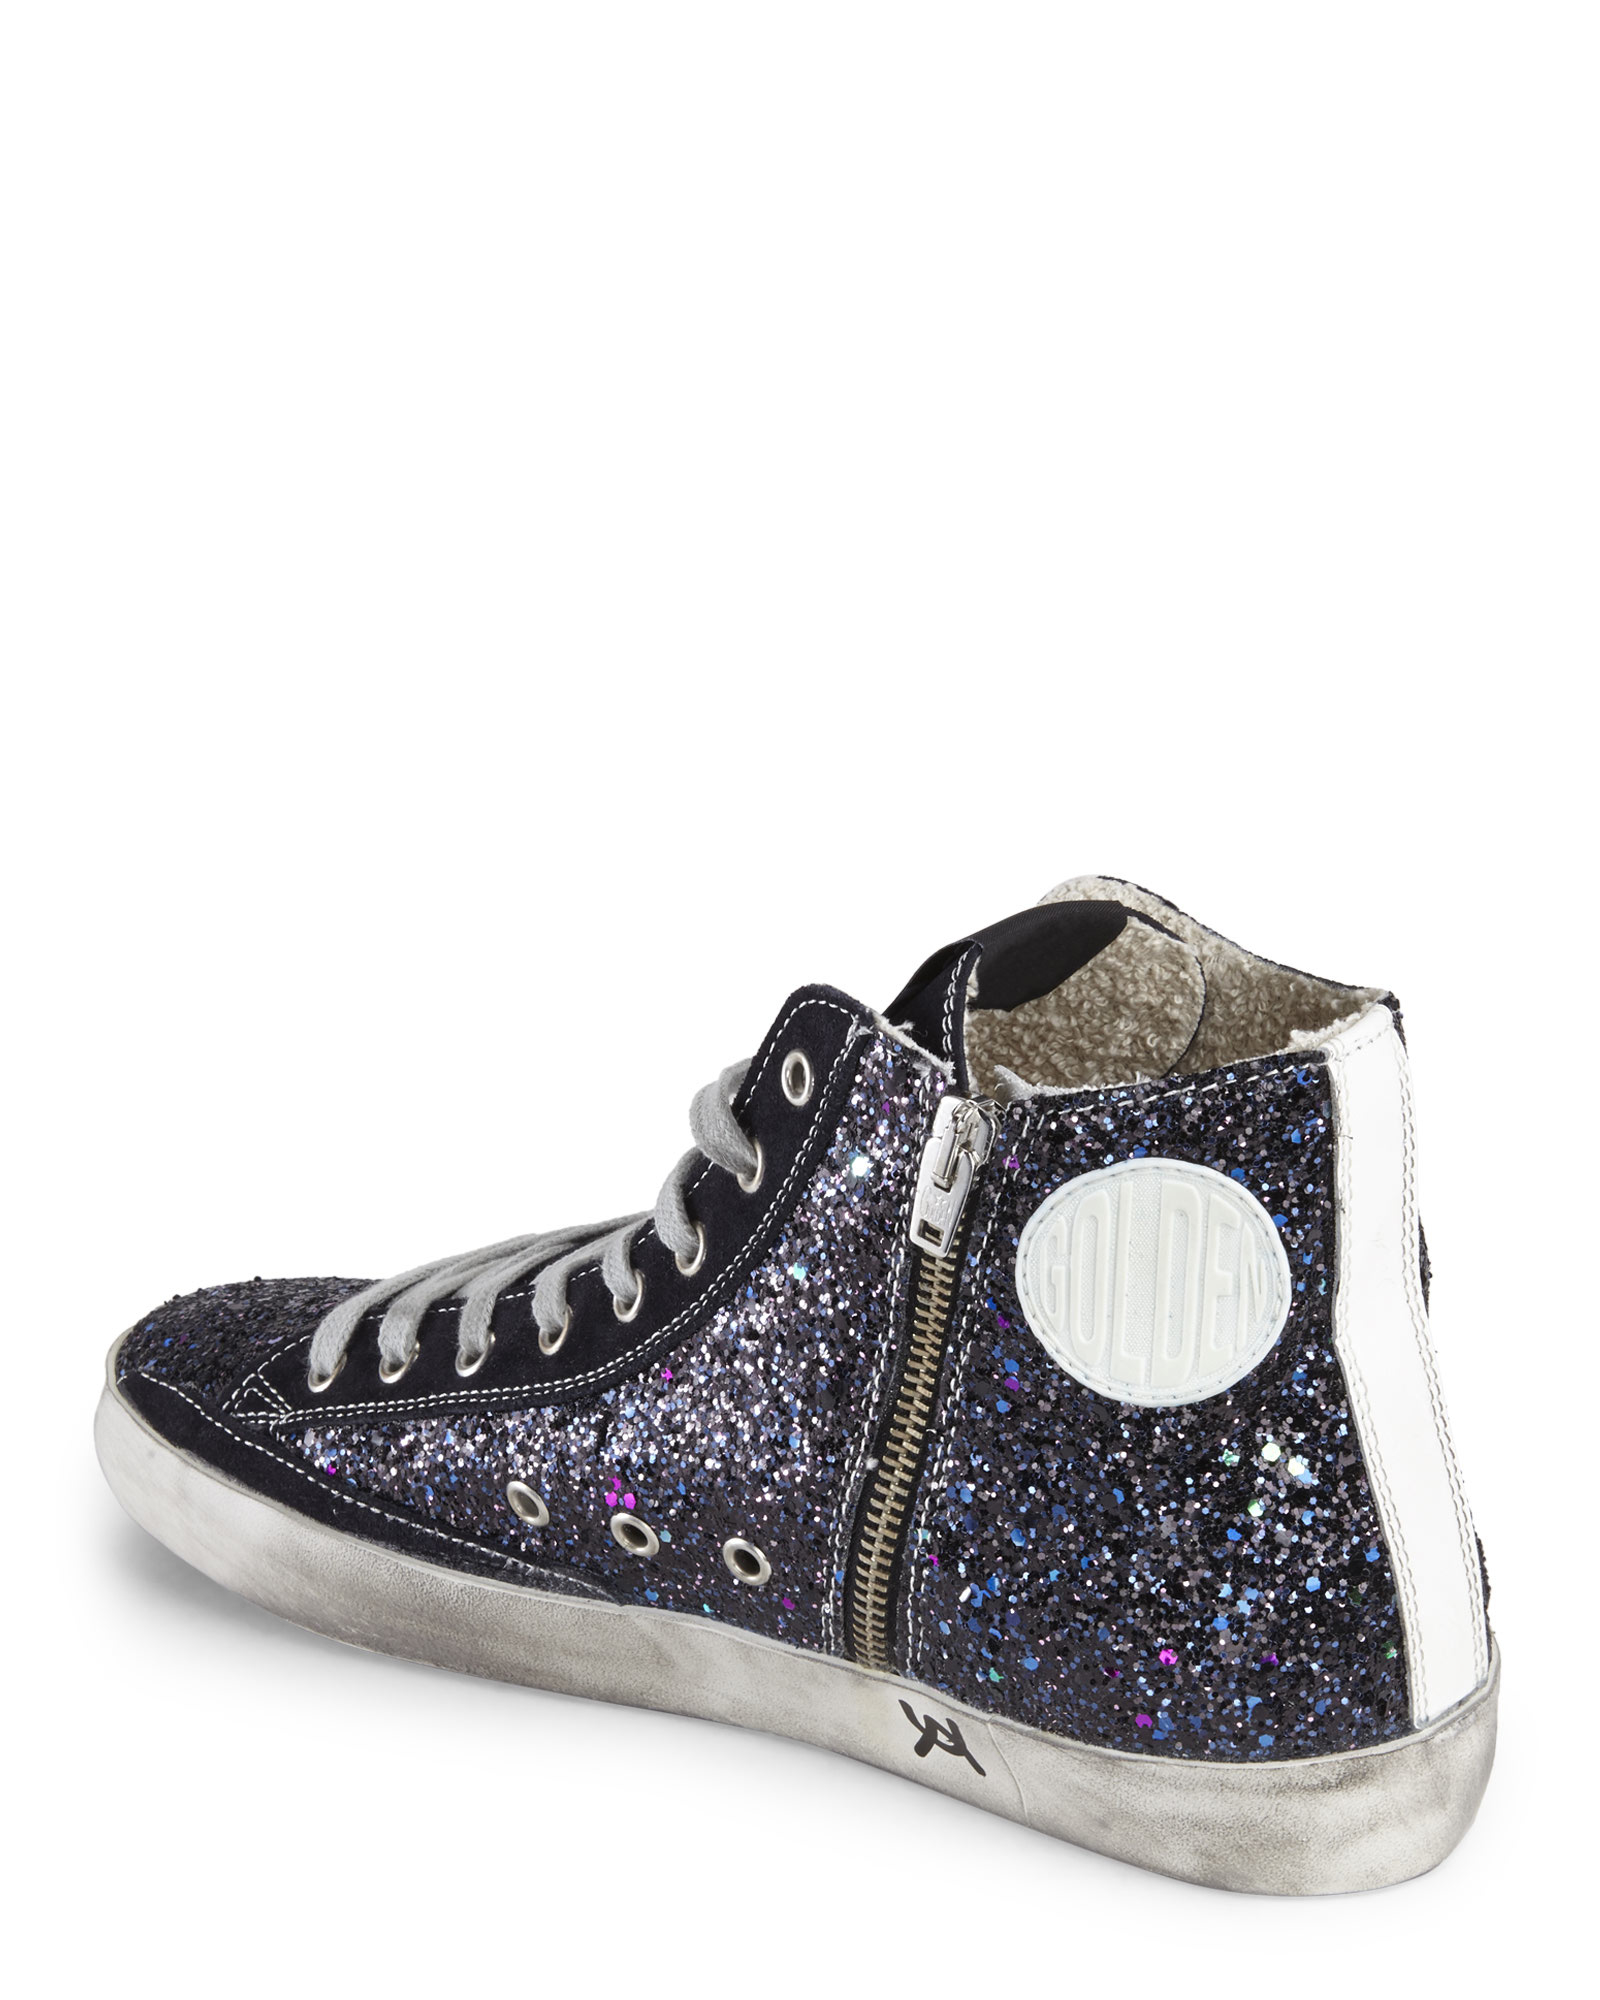 Francy high-top sneakers - Blue Golden Goose Genuine Cheap Online Outlet Excellent Huge Surprise Cheap Price Free Shipping Latest Collections xtVHswqhWn